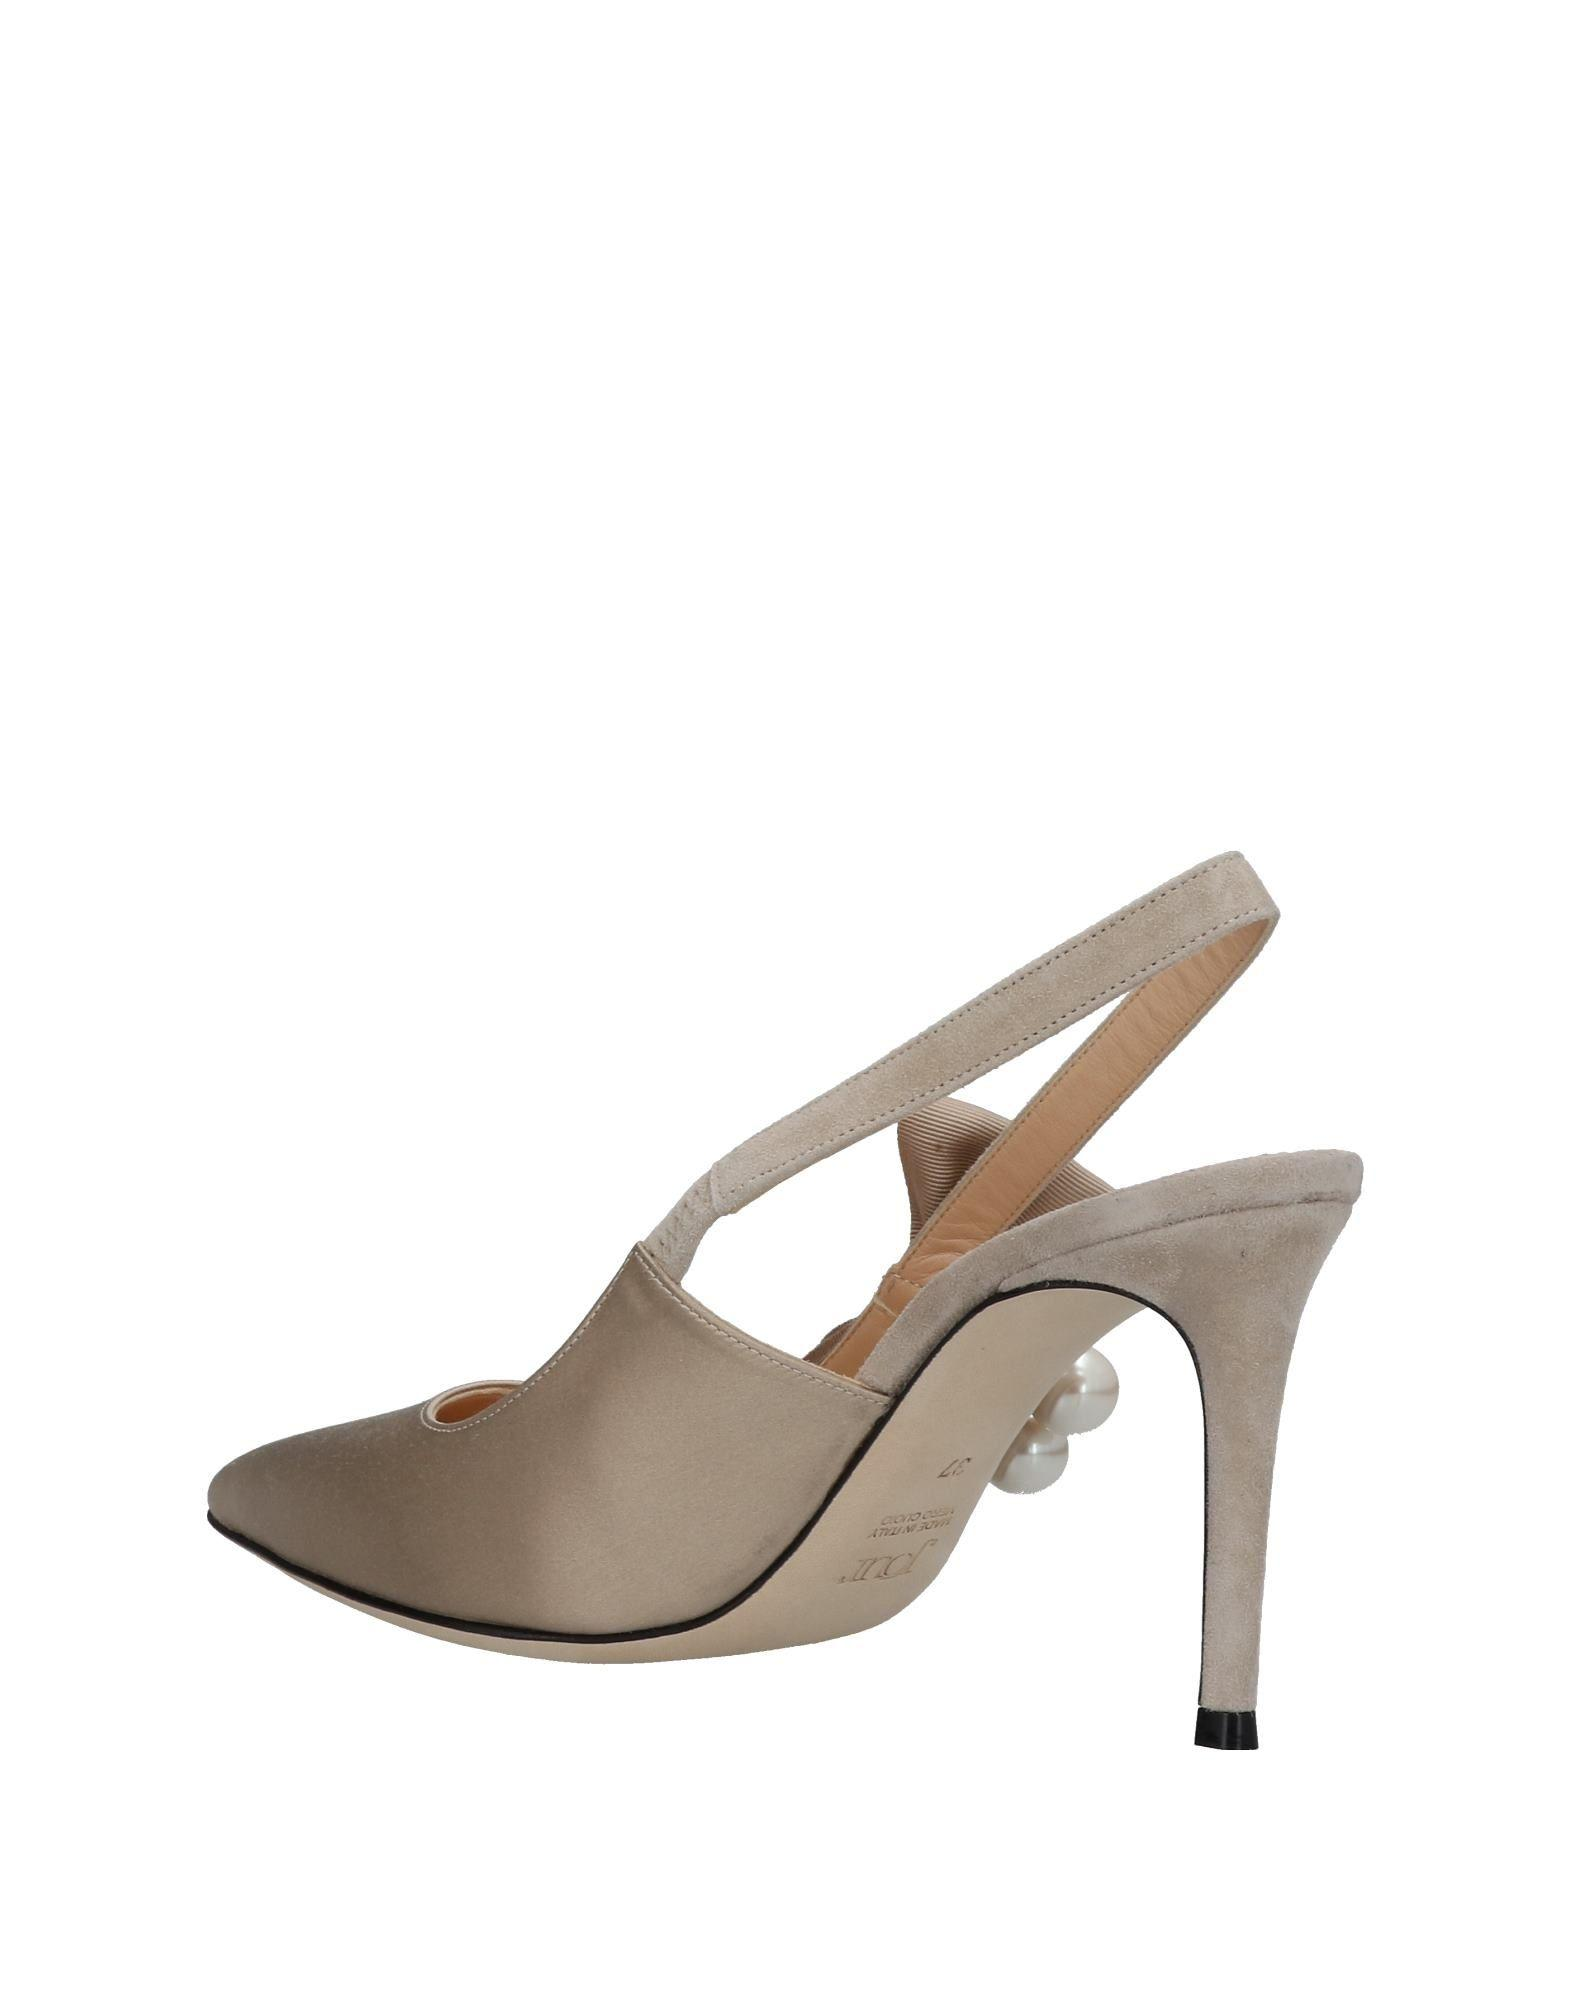 O Jour Leather Slingback Pumps 100% guaranteed cheap online cheap for cheap free shipping hot sale fake online latest collections for sale 9Jvvzbv